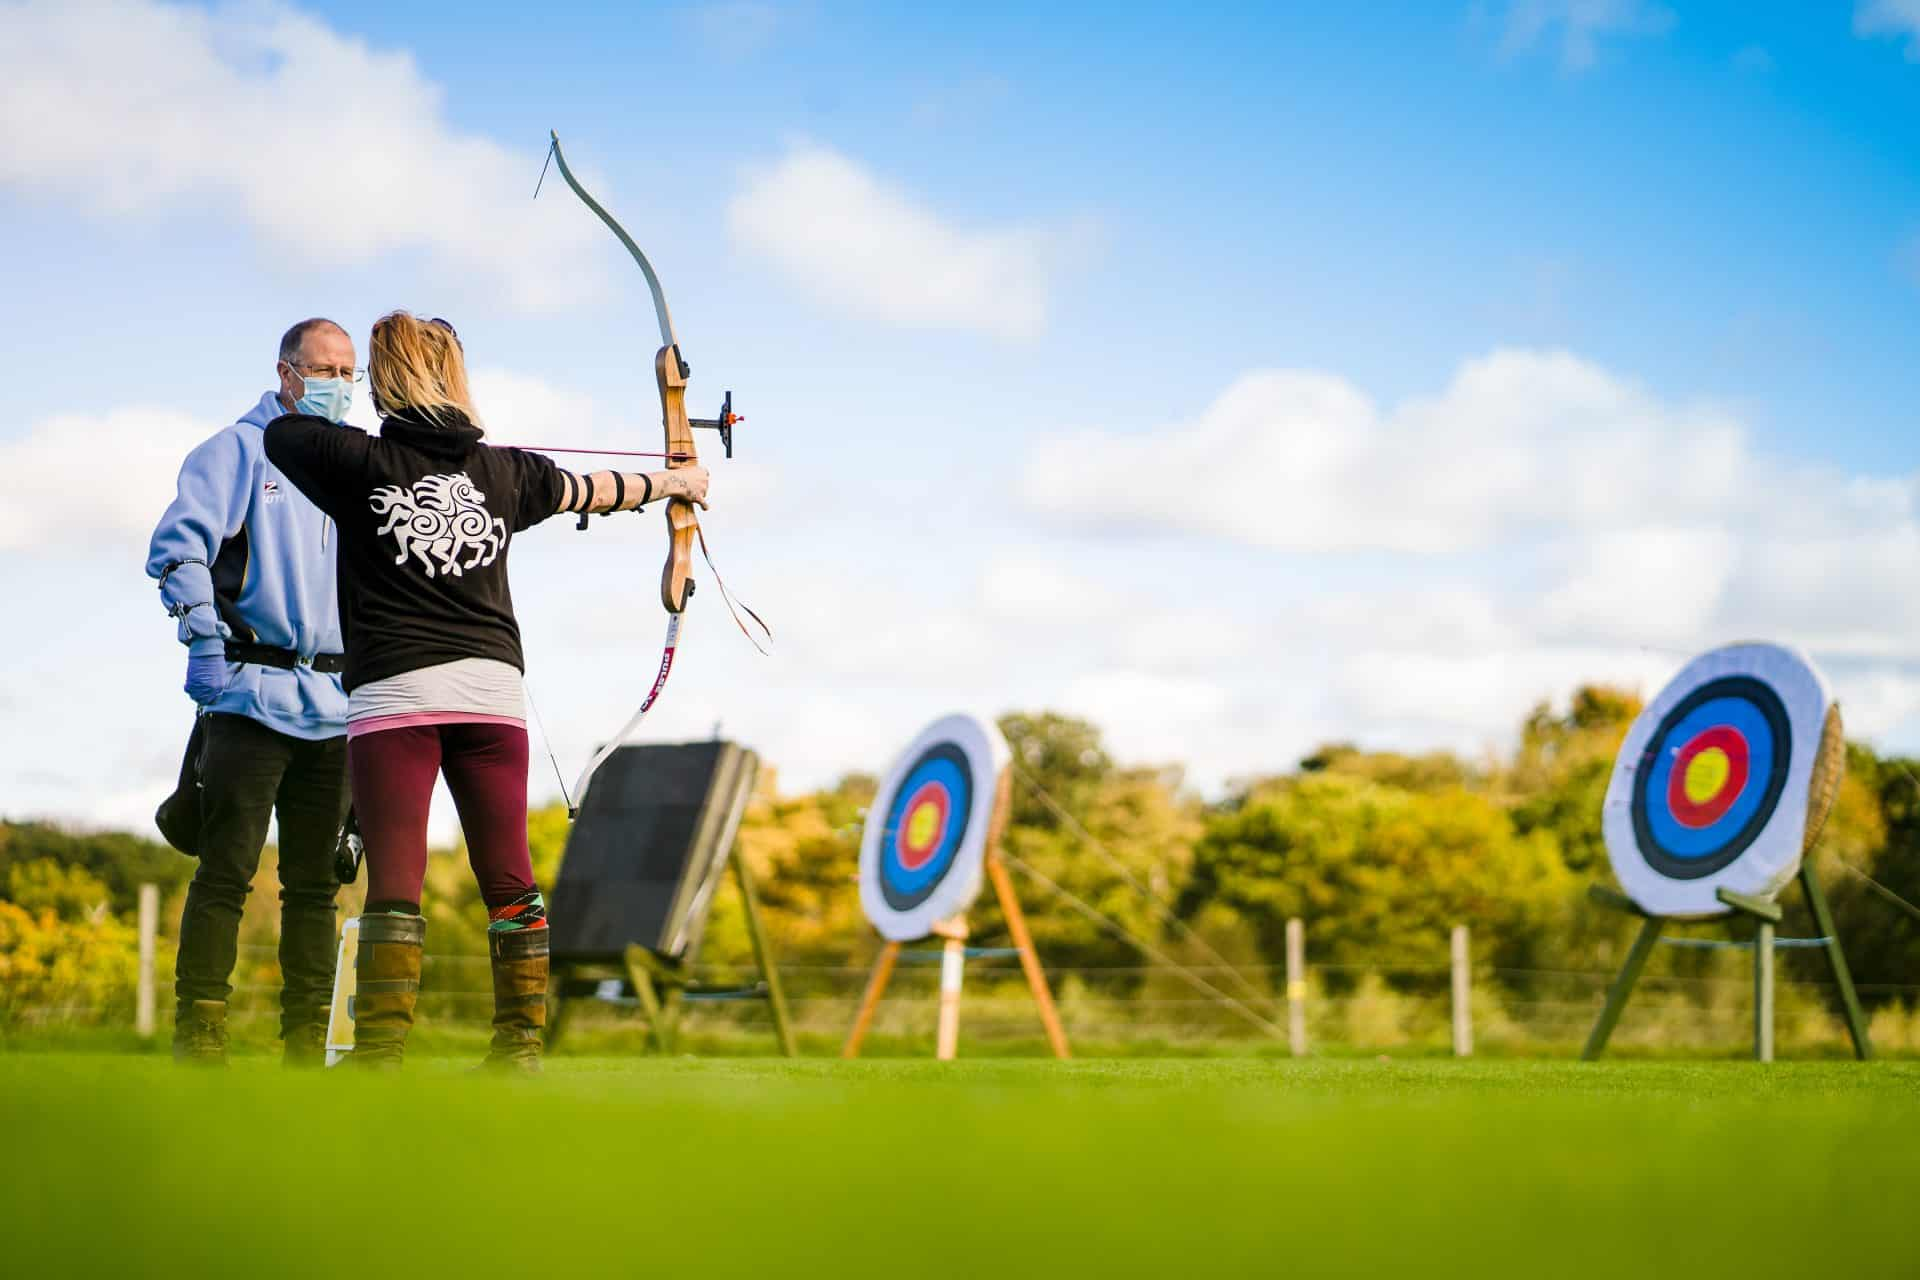 Archery at outdoor range